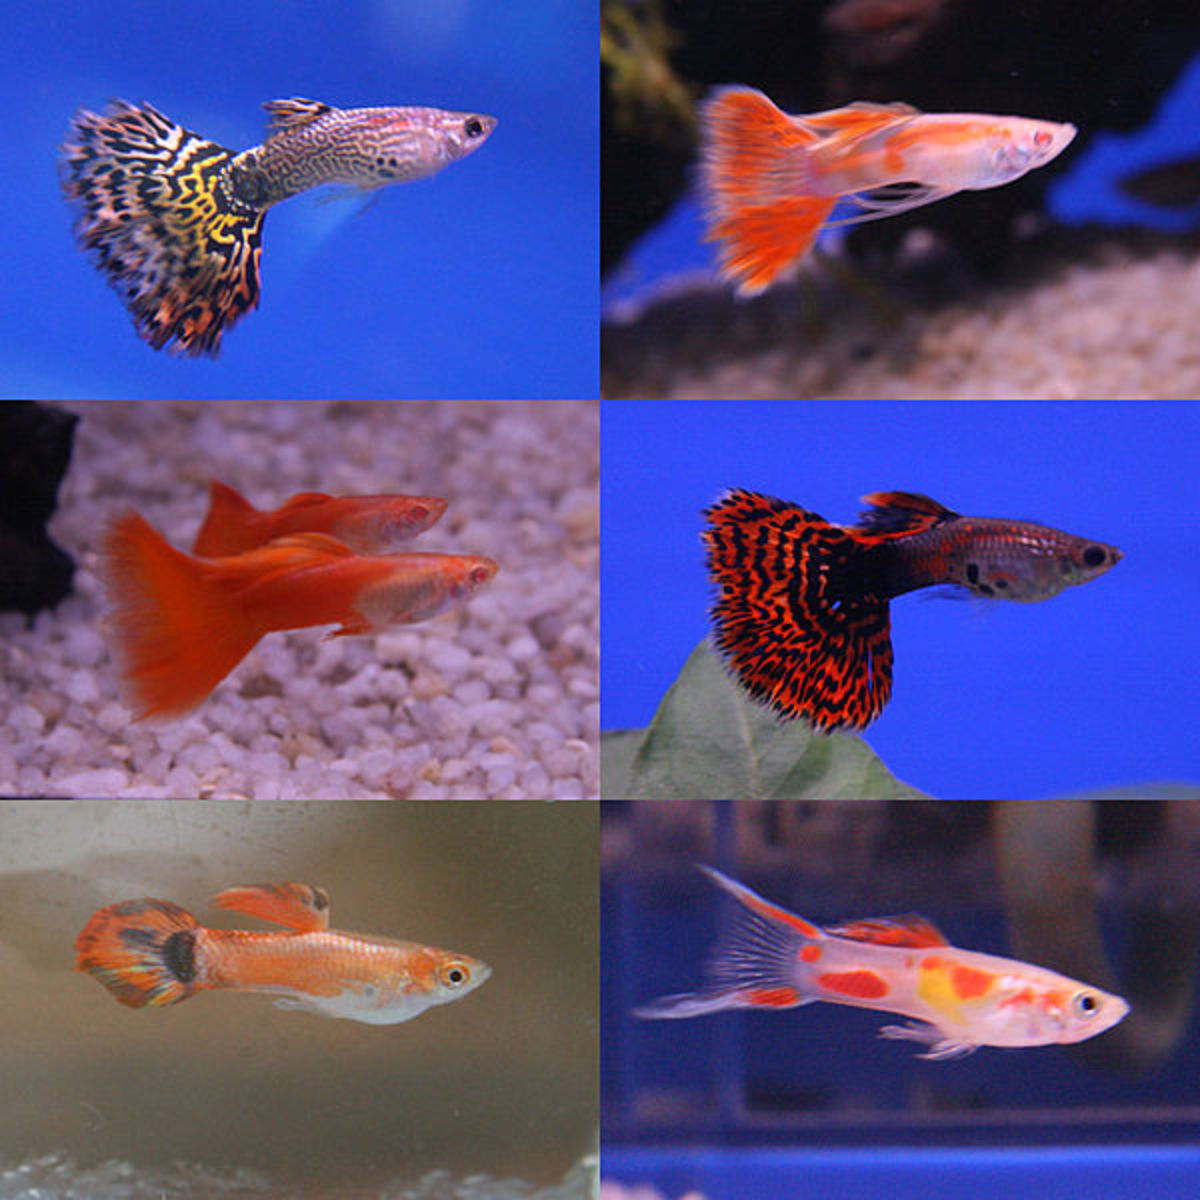 The amazing ability to adopt countless colours truly makes the guppy a fish breeder's dream.